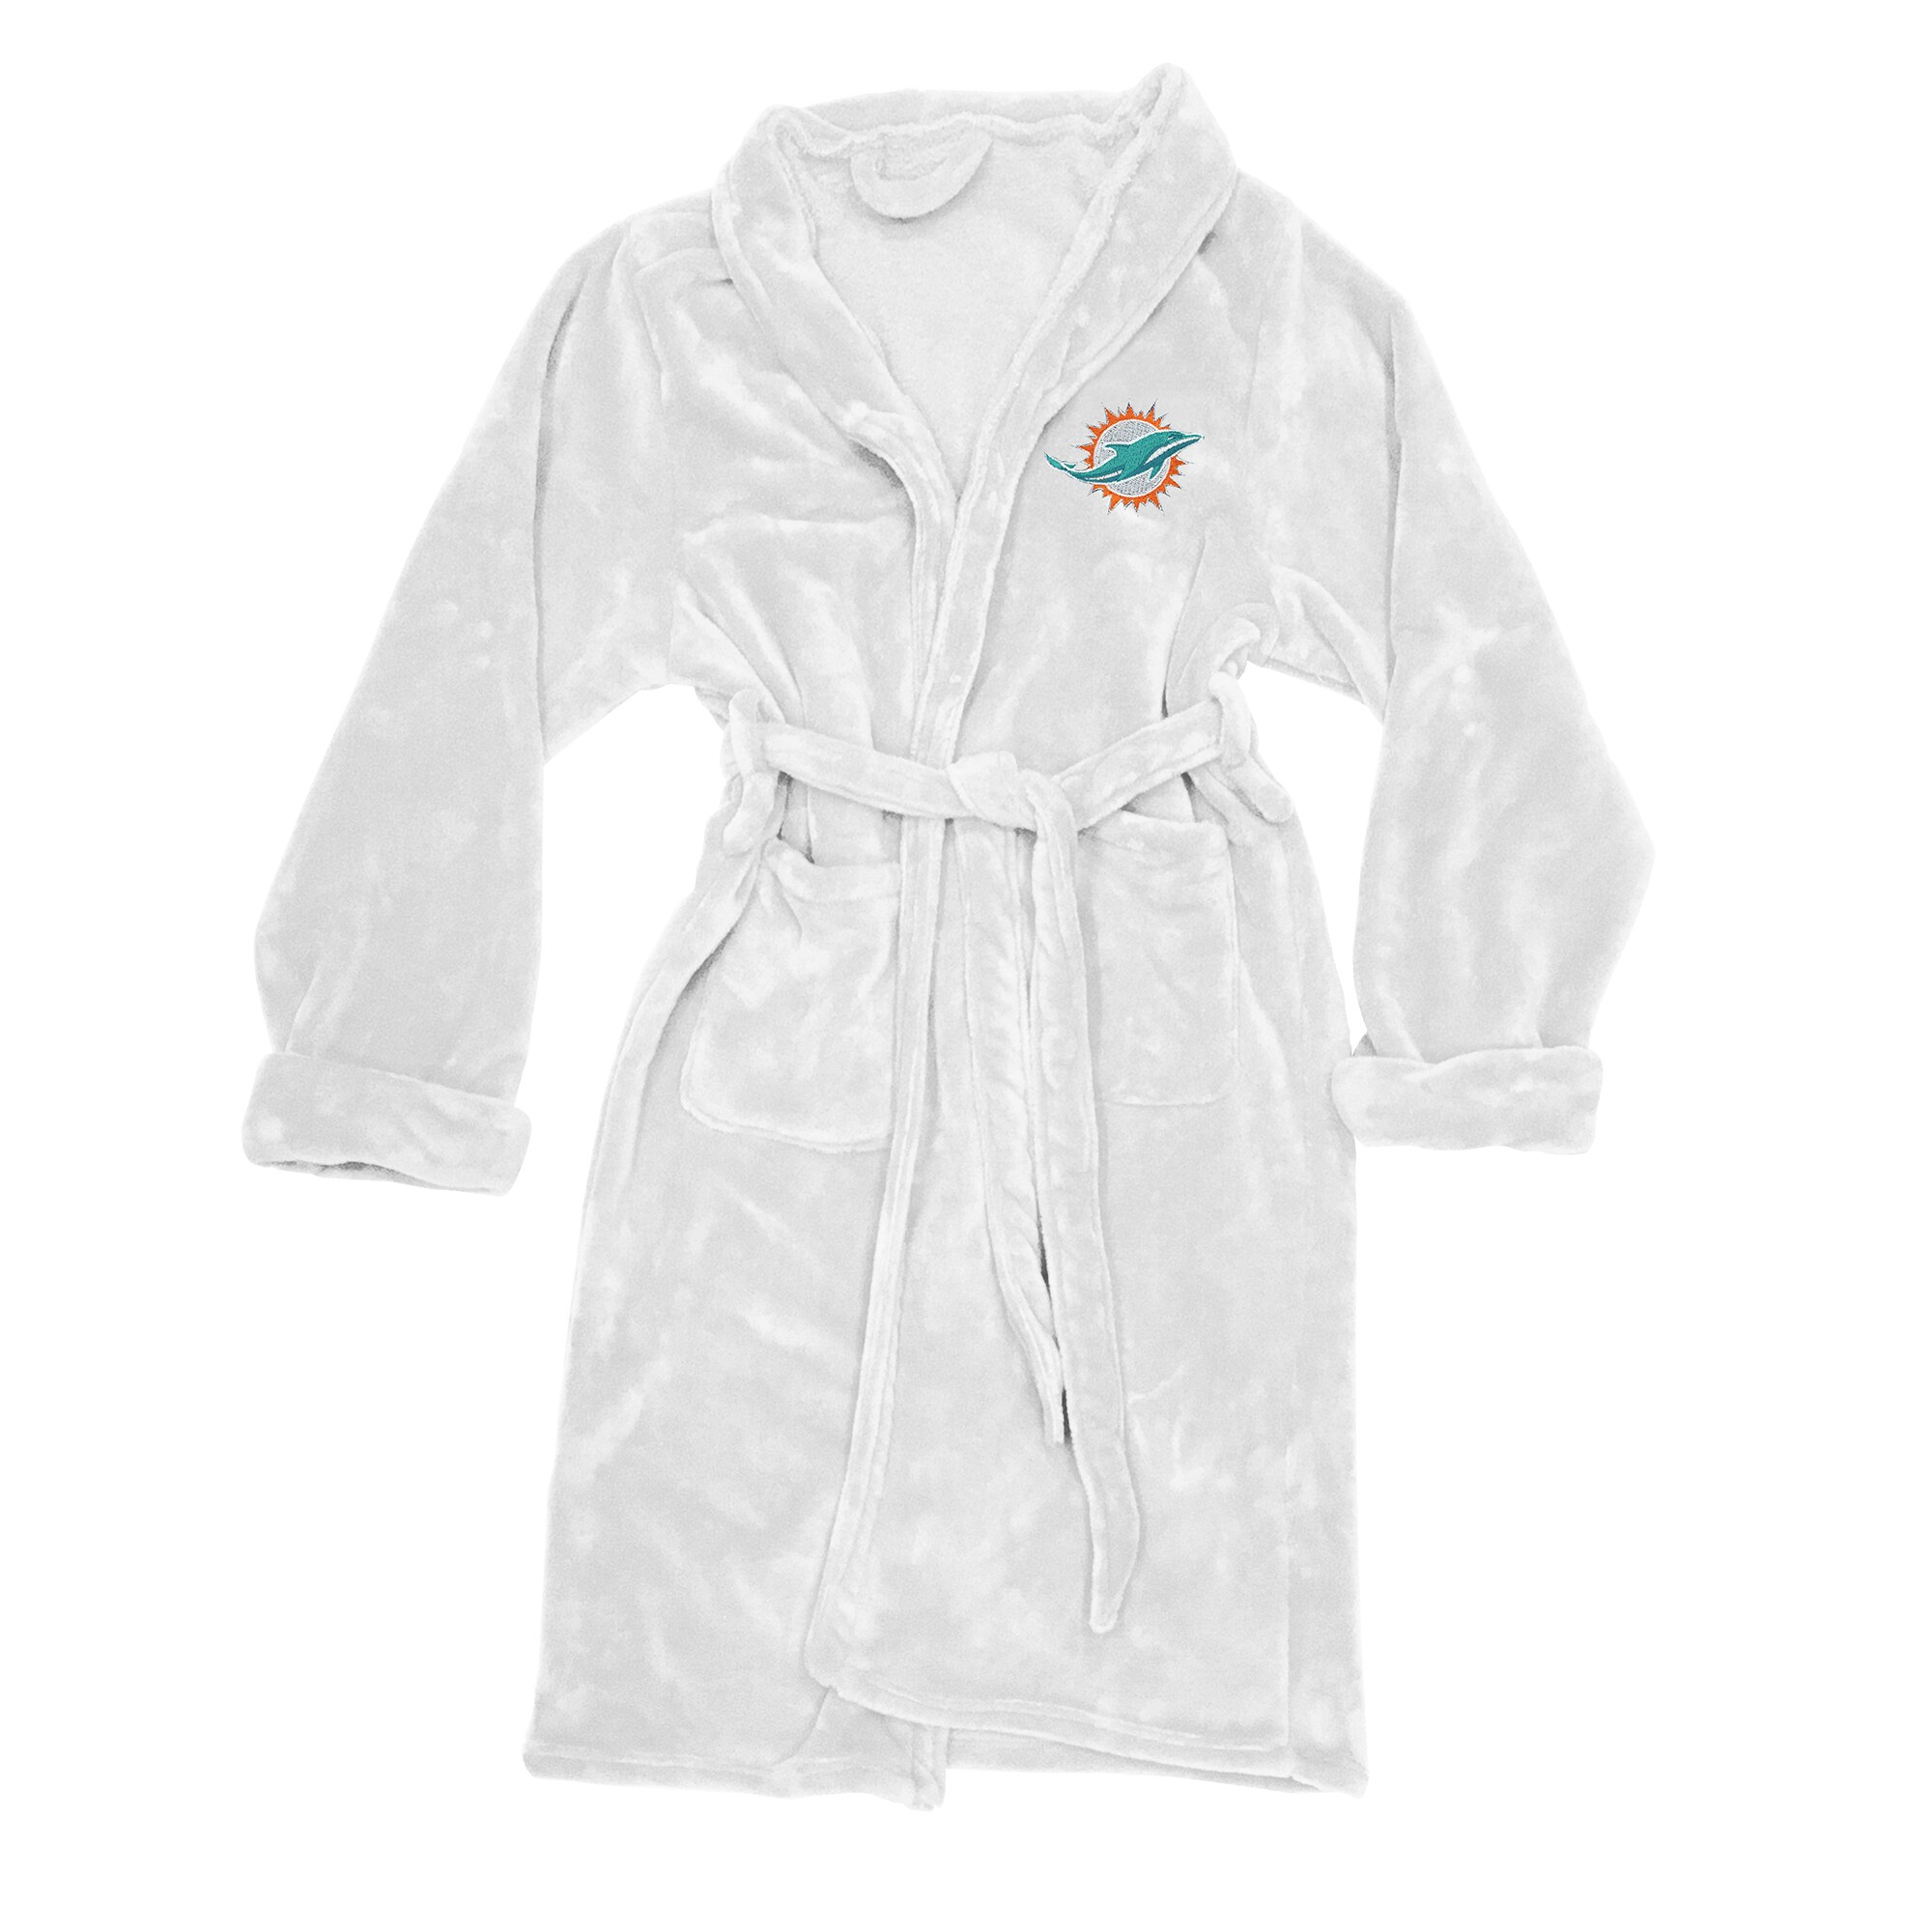 Miami Dolphins The Northwest Company Silk Touch Robe - White